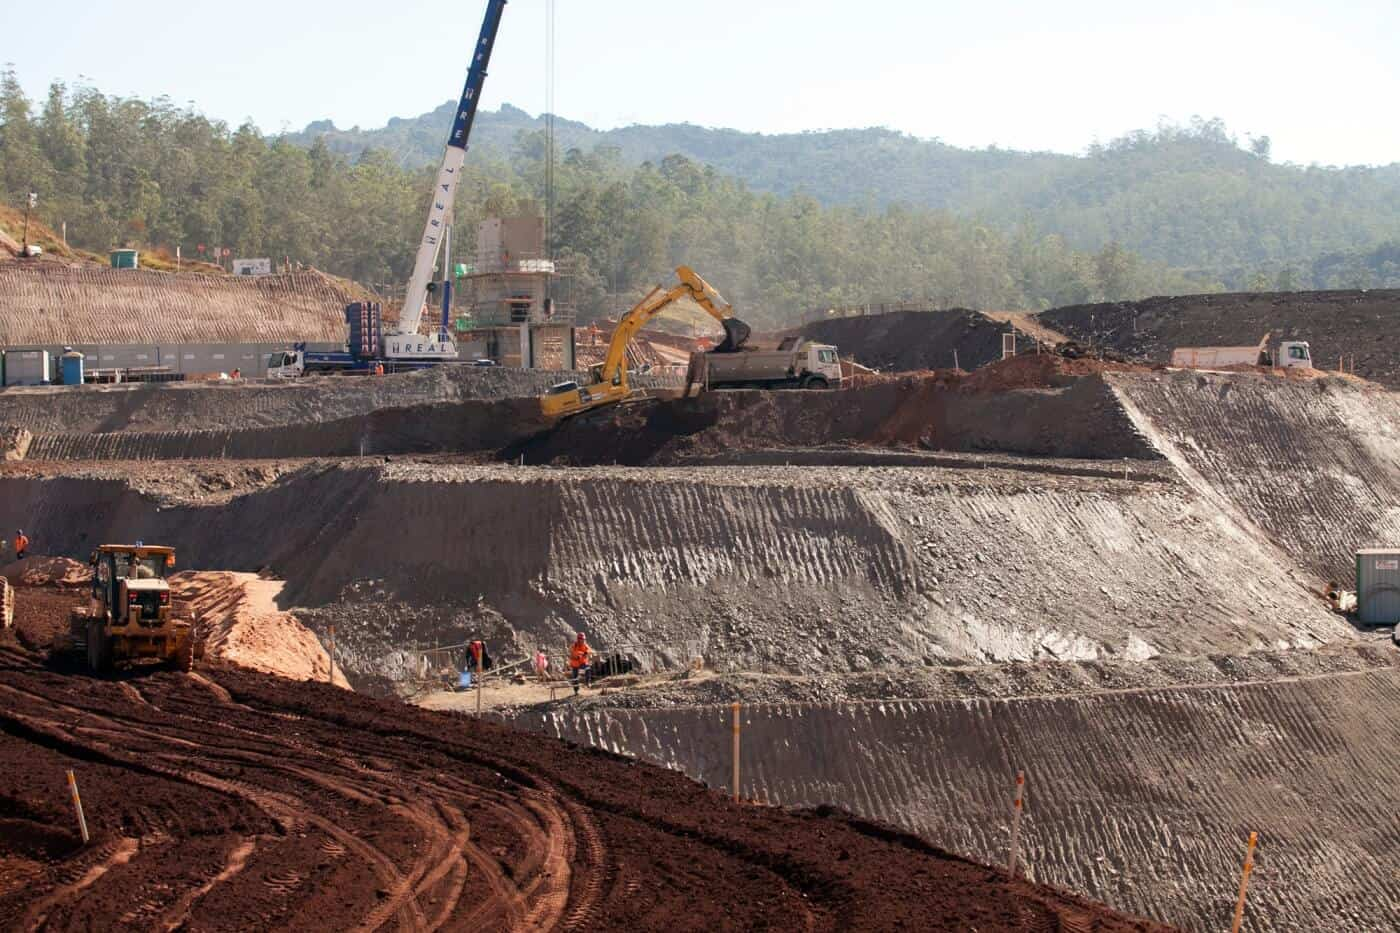 Samarco Mineração S.A. (Samarco) and its shareholders, Vale S.A. (Vale) and BHP Billiton Brasil Ltda (BHP Billiton Brasil) have entered into a preliminary agreement with the Federal Prosecutors' Office in Brazil (Federal Prosecutors) in relation to the Fundão tailings dam failure on 5 November 2015 (Preliminary Agreement). On 2 March 2016, Samarco, Vale, BHP Billiton Brasil and the Brazilian Authorities (as described in the Note below) entered into a Framework Agreement (described in the Note below) for the remediation and compensation of the impacts of the dam failure. The Federal Prosecutors are not a party to the Framework Agreement. The Preliminary Agreement outlines the process and timeline for negotiation of a settlement of the BRL 155 billion (approximately US$47.5 billion) Civil Claim relating to the dam failure. The Preliminary Agreement provides for the appointment of experts to advise the Federal Prosecutors in relation to the social and environmental impacts of the dam failure, any revisions to the social and environmental remediation programs under the Framework Agreement (Programs) and for the ongoing assessment and monitoring of the Programs. Samarco, Vale and BHP Billiton Brasil will provide existing studies and research to the expert advisors. The expert advisors' conclusions will be considered in the negotiations of a final settlement arrangement with the Federal Prosecutors, which is expected to occur by 30 June 2017 under the timeframe established in the Preliminary Agreement. Under the Preliminary Agreement, Samarco, Vale and BHP Billiton Brasil will provide, subject to Court approval, total security of BRL 2.2 billion (approximately US$675 million, 100 per cent basis) to support the payments for the Programs (Interim Security). The Interim Security comprises a charge over Samarco's assets of BRL 800 million (approximately US$245 million), insurance bonds of BRL 1.3 billion (approximately US$400 million), and liquid assets of BRL 100 million (ap